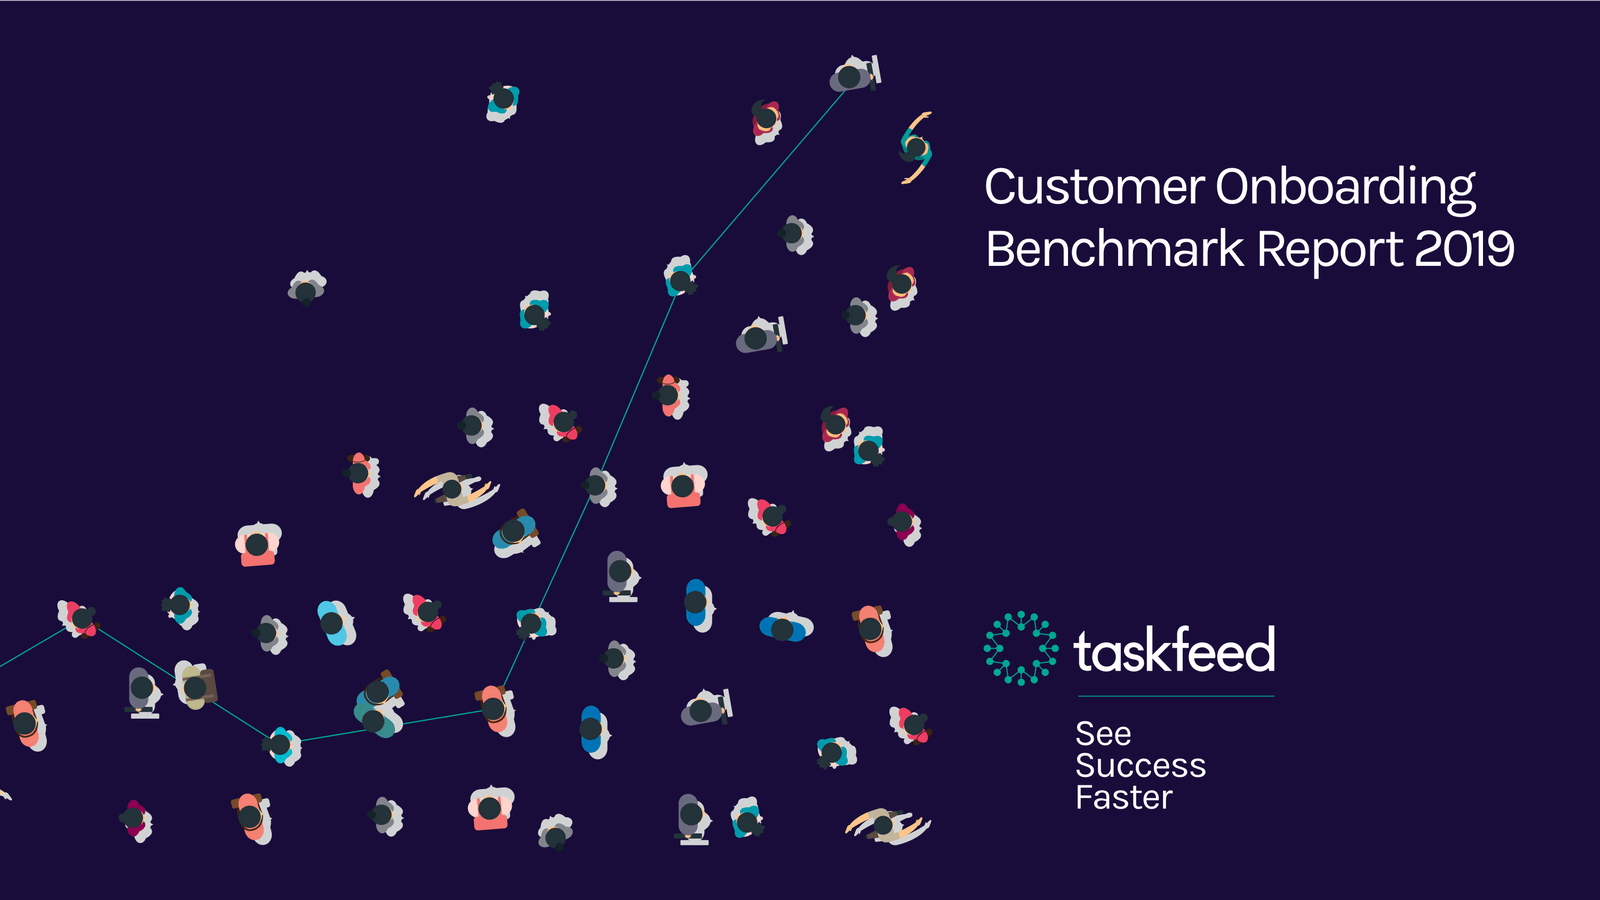 Customer Onboarding Benchmark Report '19 is here!